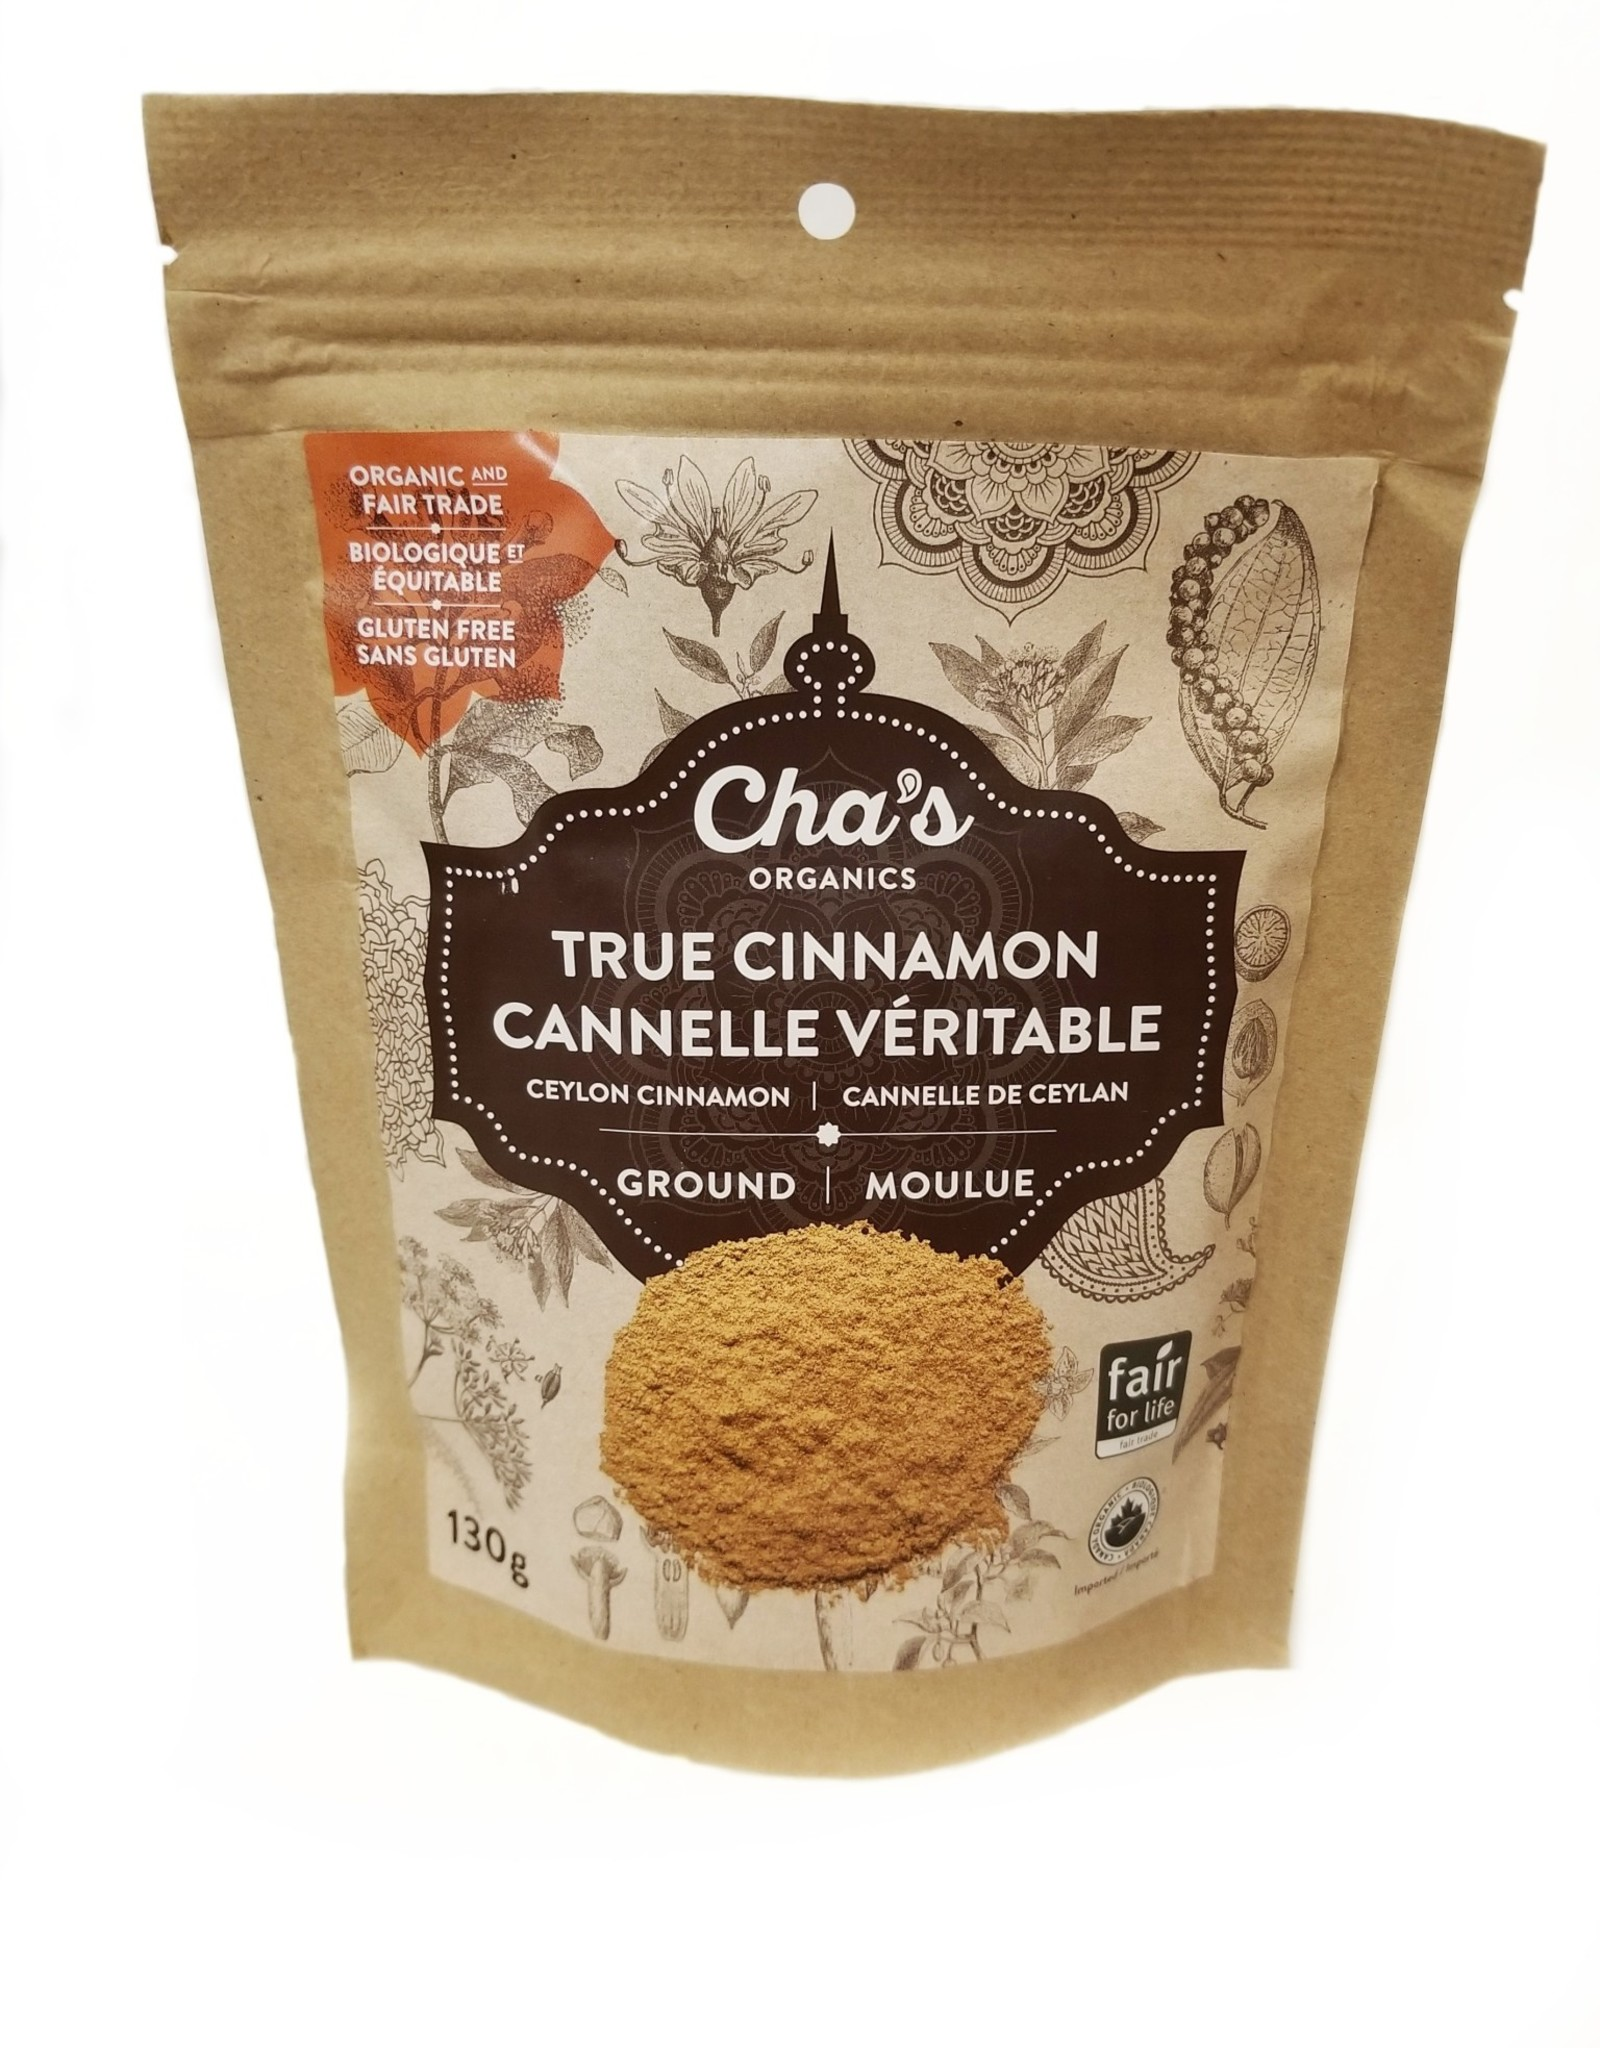 Cha's Organics Cha's Organic True Cinnamon, Ground 130g